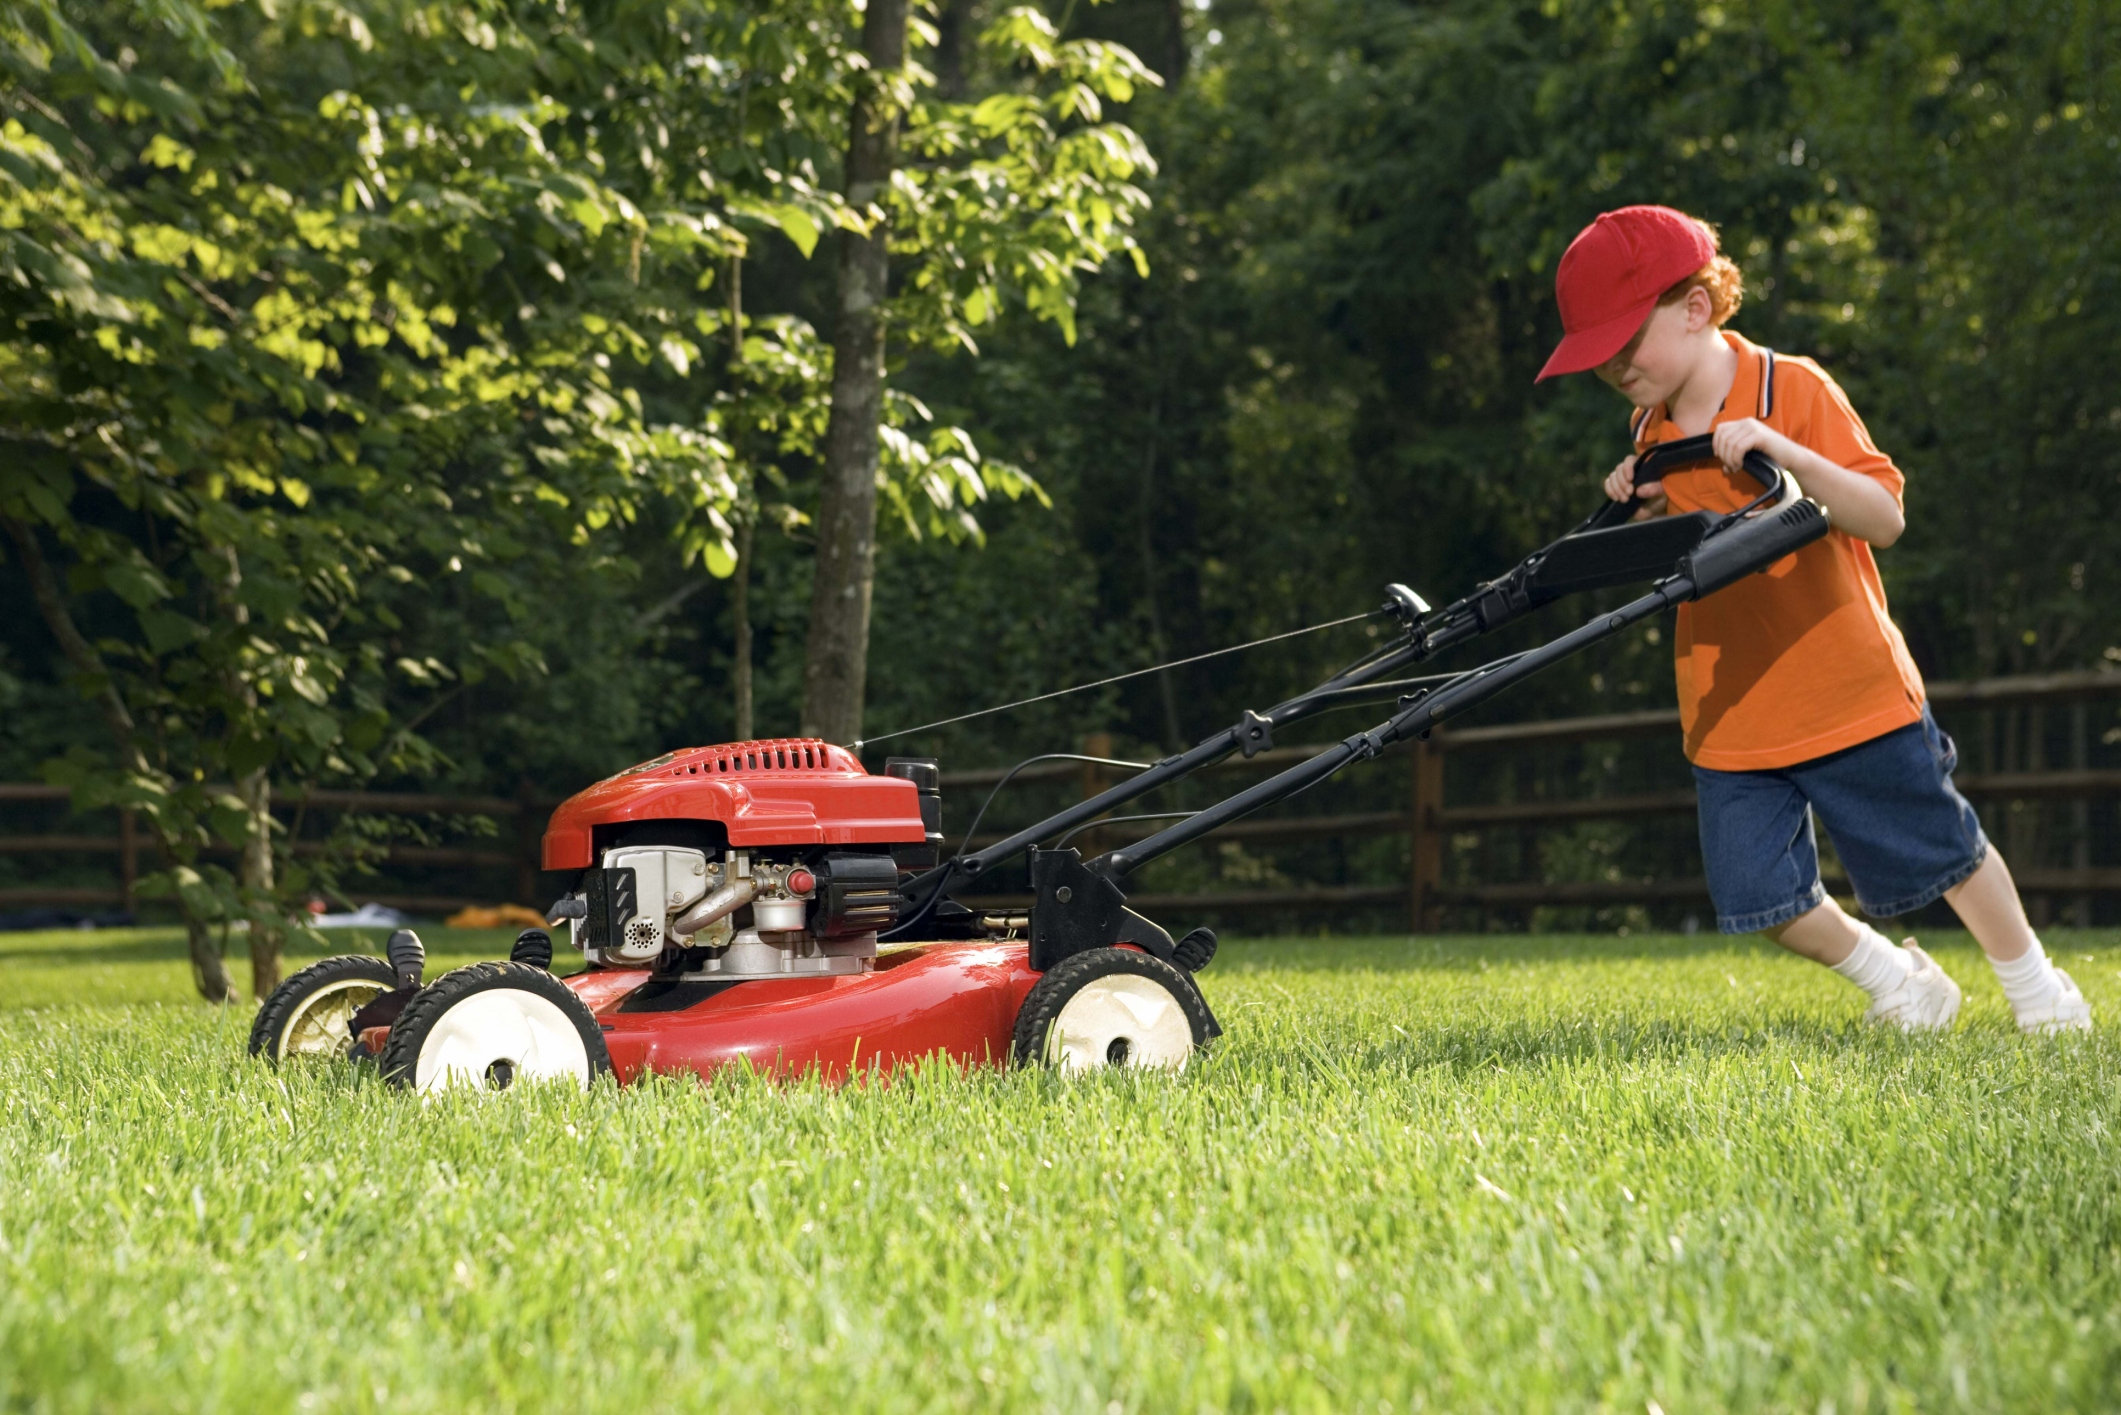 How to Troubleshoot Lawn-Boy Self-propelled Mowers | Home Guides